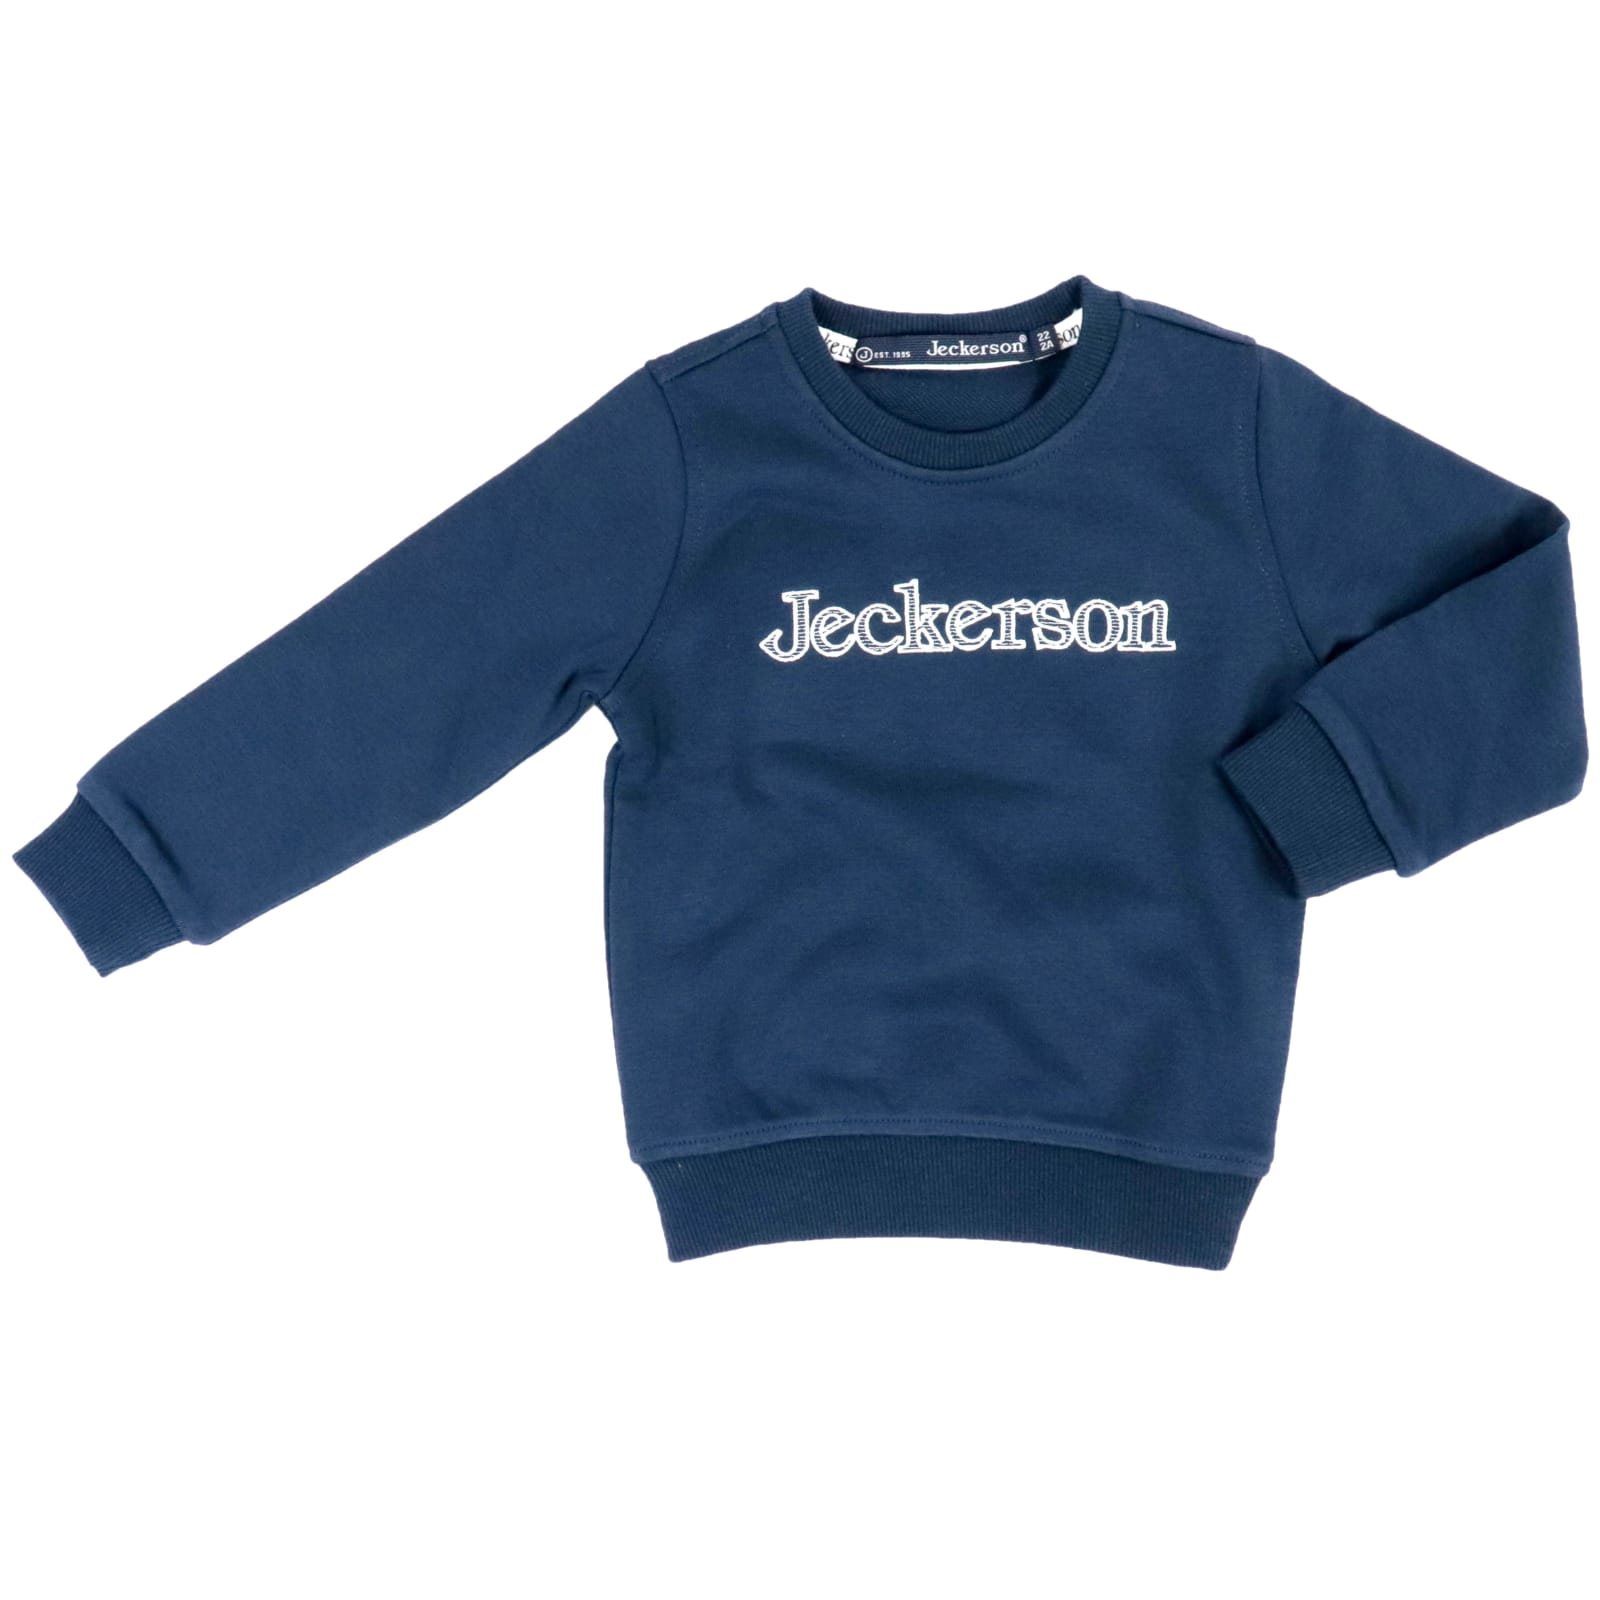 Jeckerson Kids' Cotton Sweatshirt In Blue / Cream